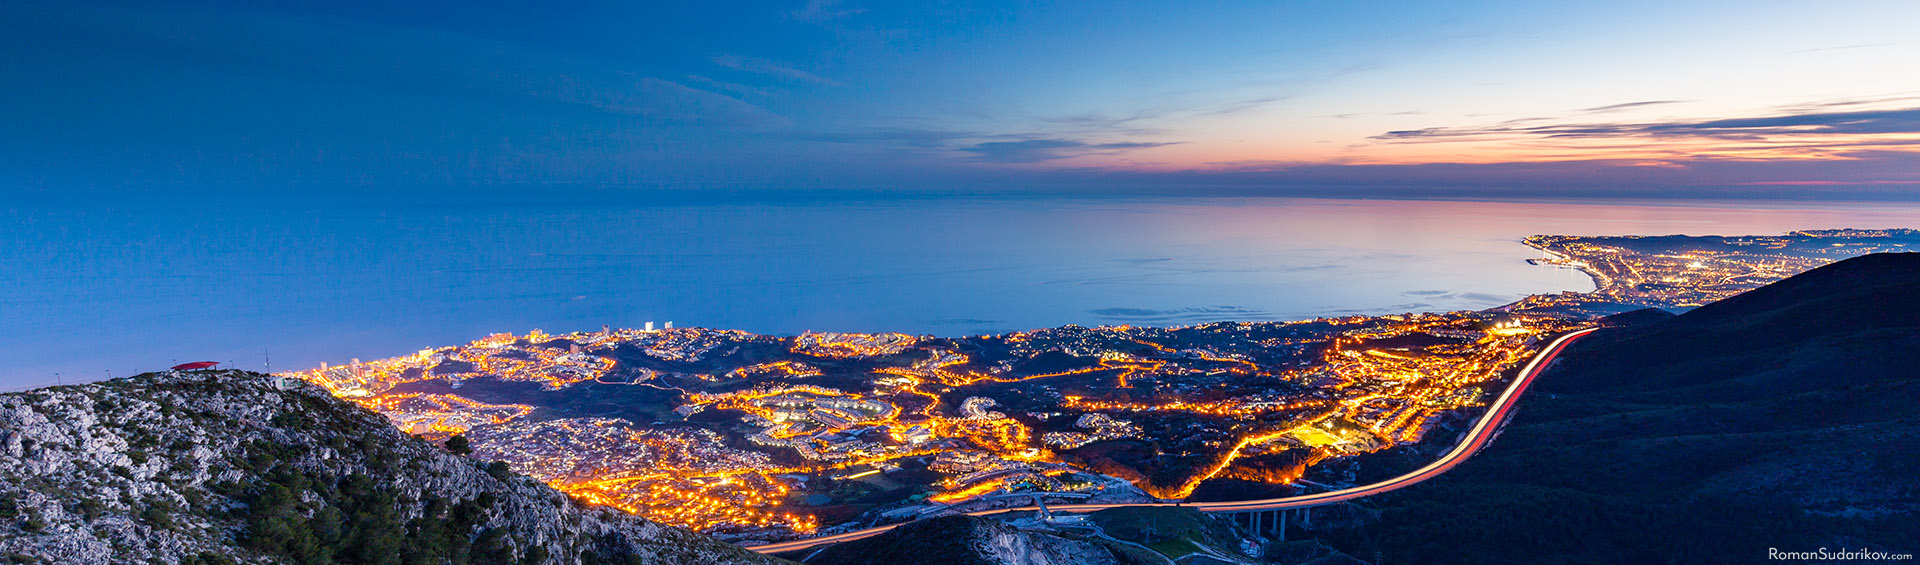 The lights of Benalmádena during the night. The picture is taken from the top of the mountain Calamorro. Costa del Sol, Spain.